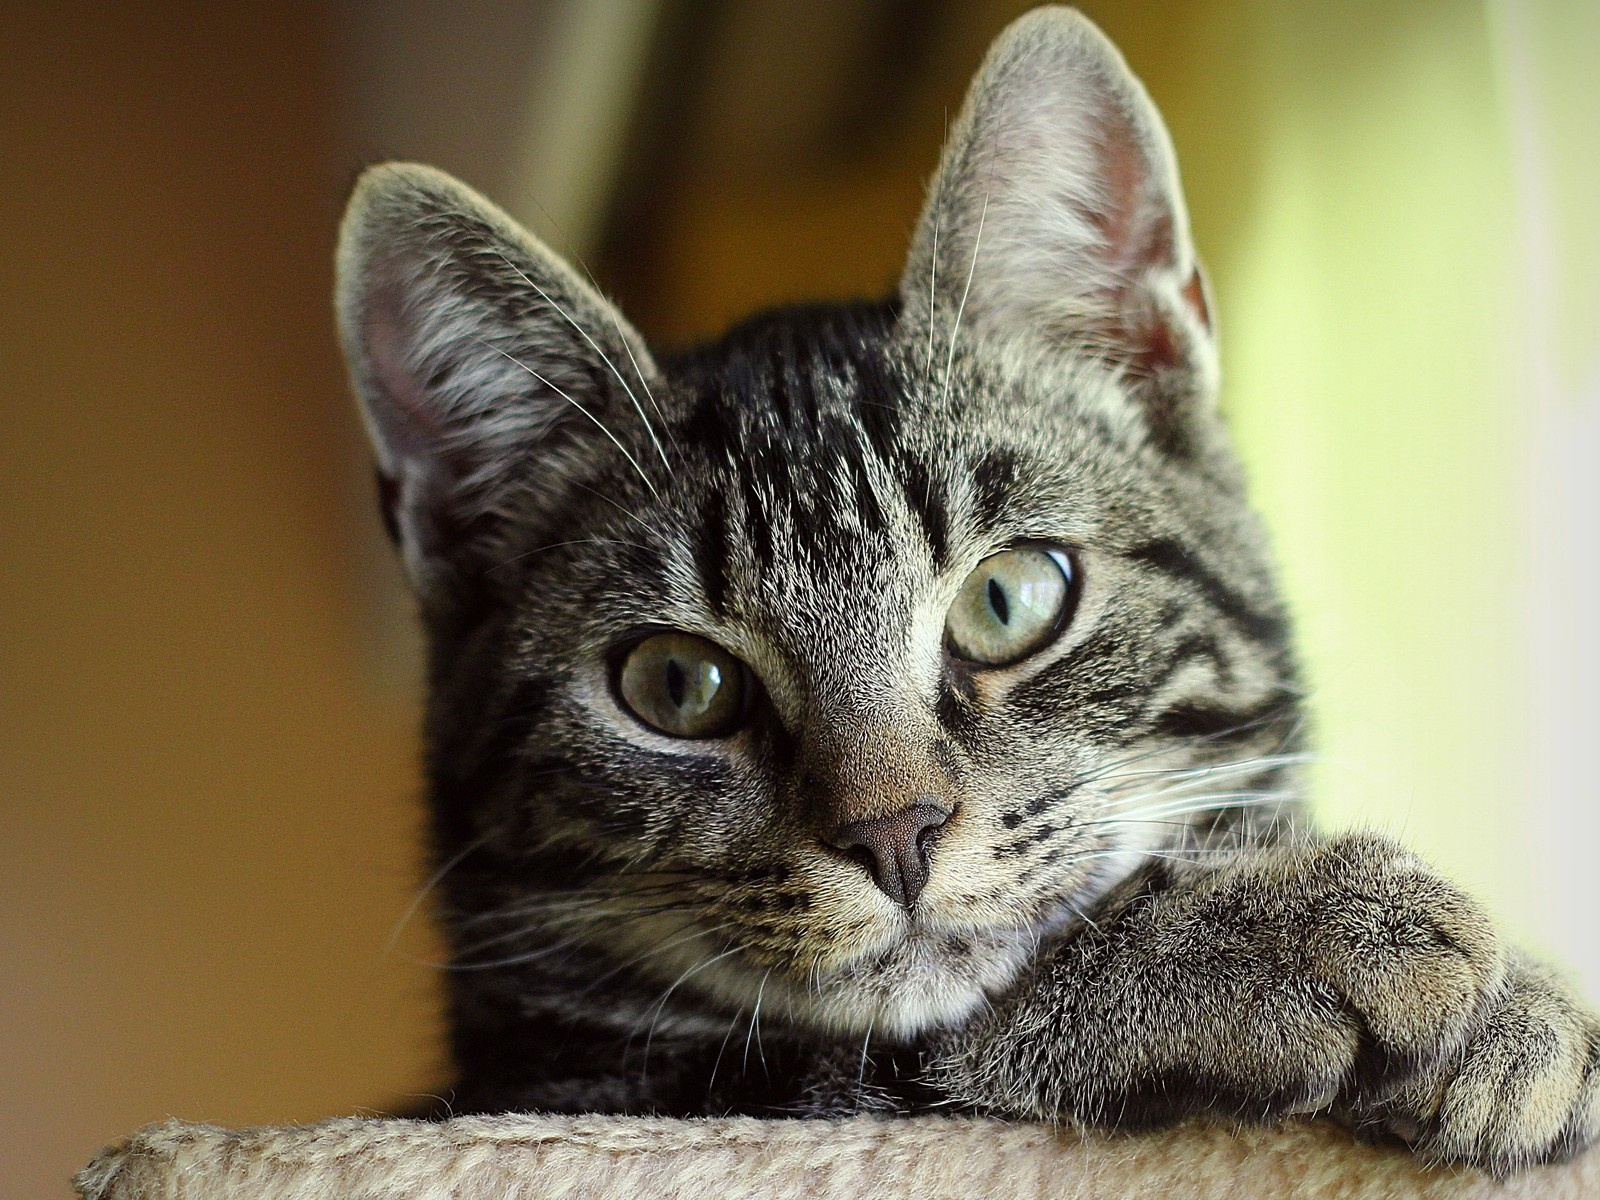 click to free download the wallpaper--Cute Animals Image, Attentive Kitten, One Paw Put on Another, Relaxable Look 1600X1200 free wallpaper download